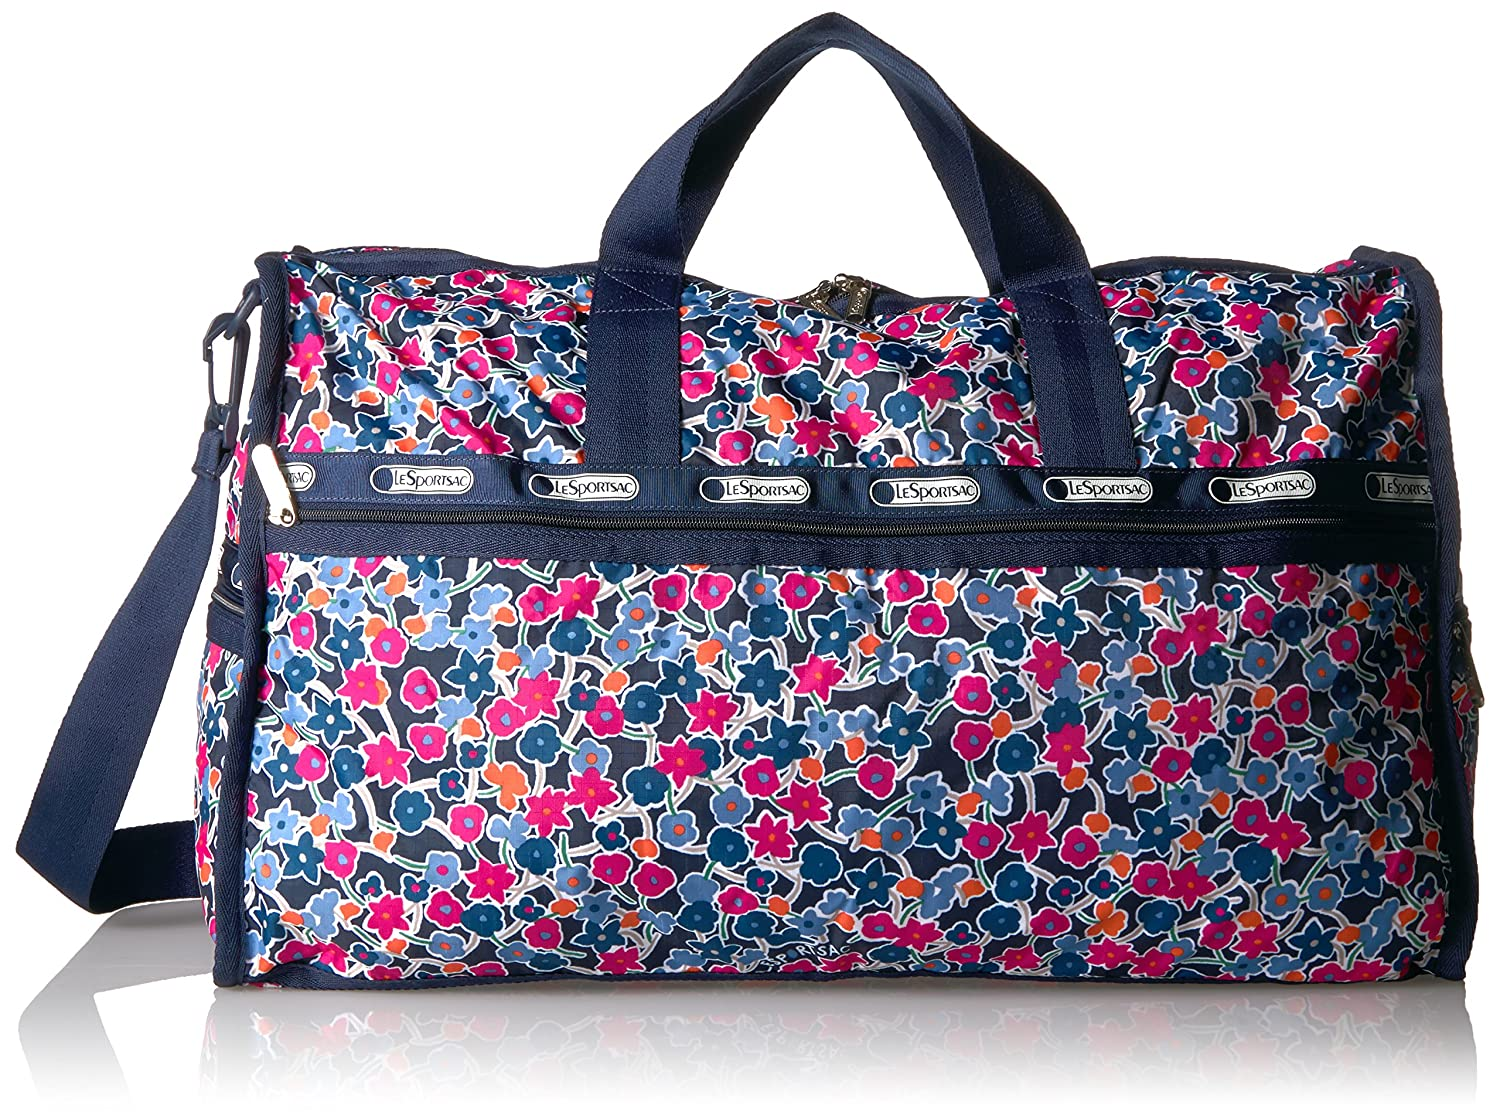 LeSportsac ユニセックスアダルト 7185 B06Y1BRFWJ One Size|Delightful Navy Delightful Navy One Size